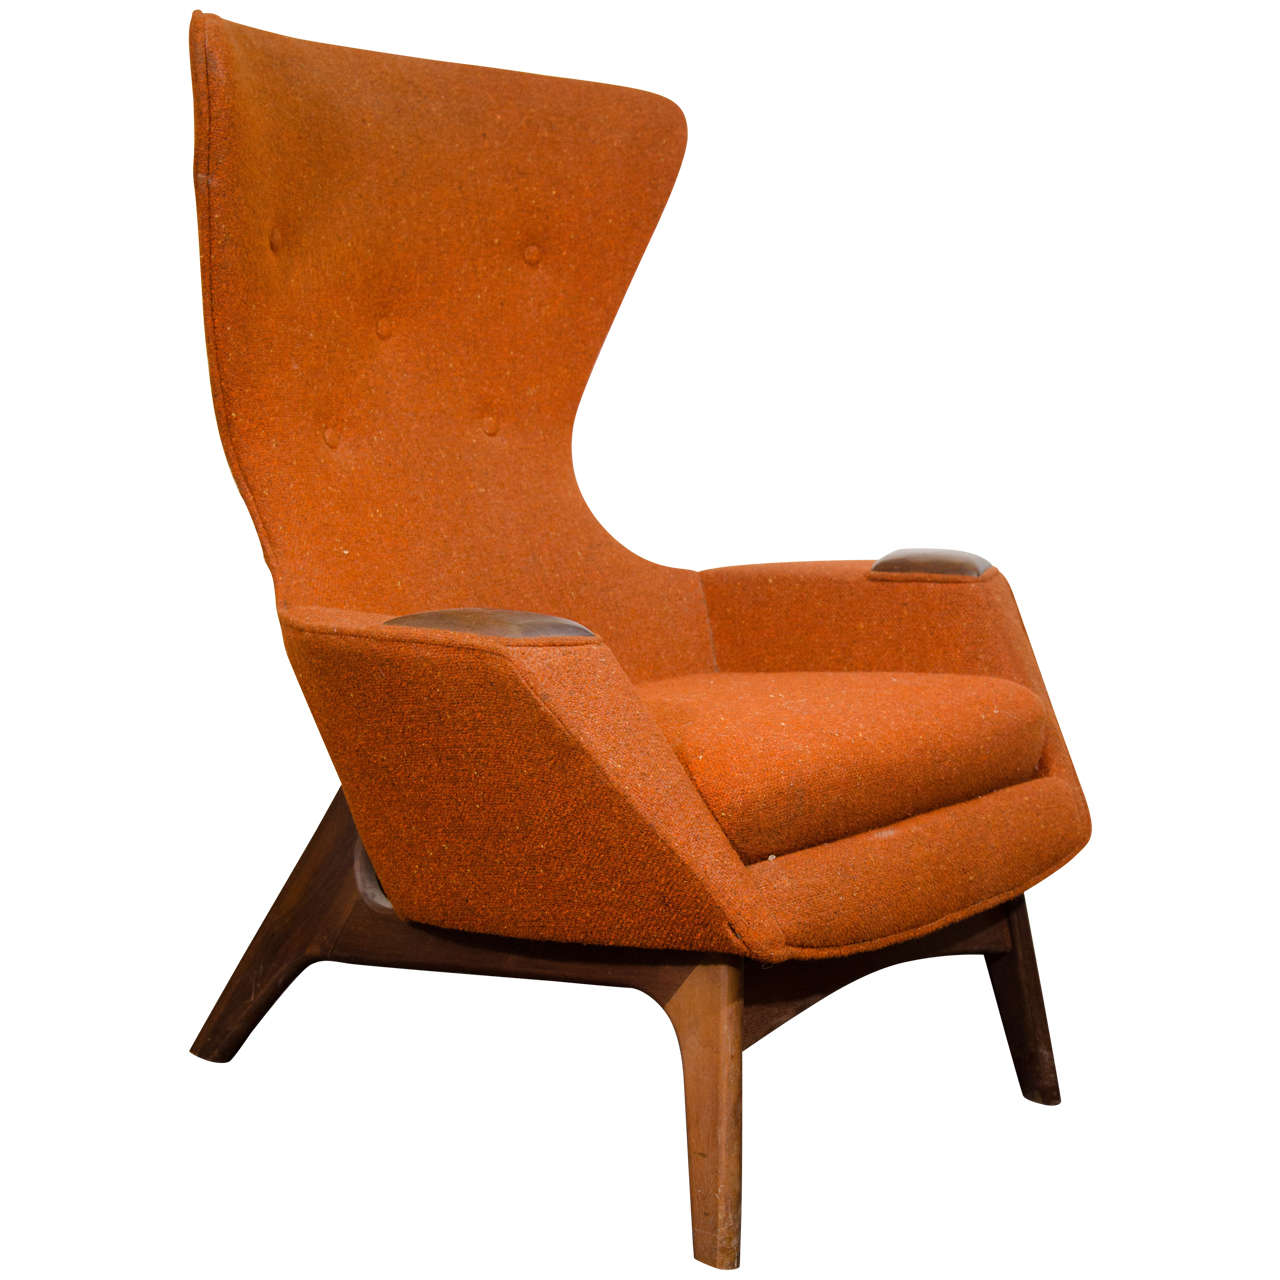 midcentury high back wing chair by adrian pearsall at stdibs - midcentury high back wing chair by adrian pearsall